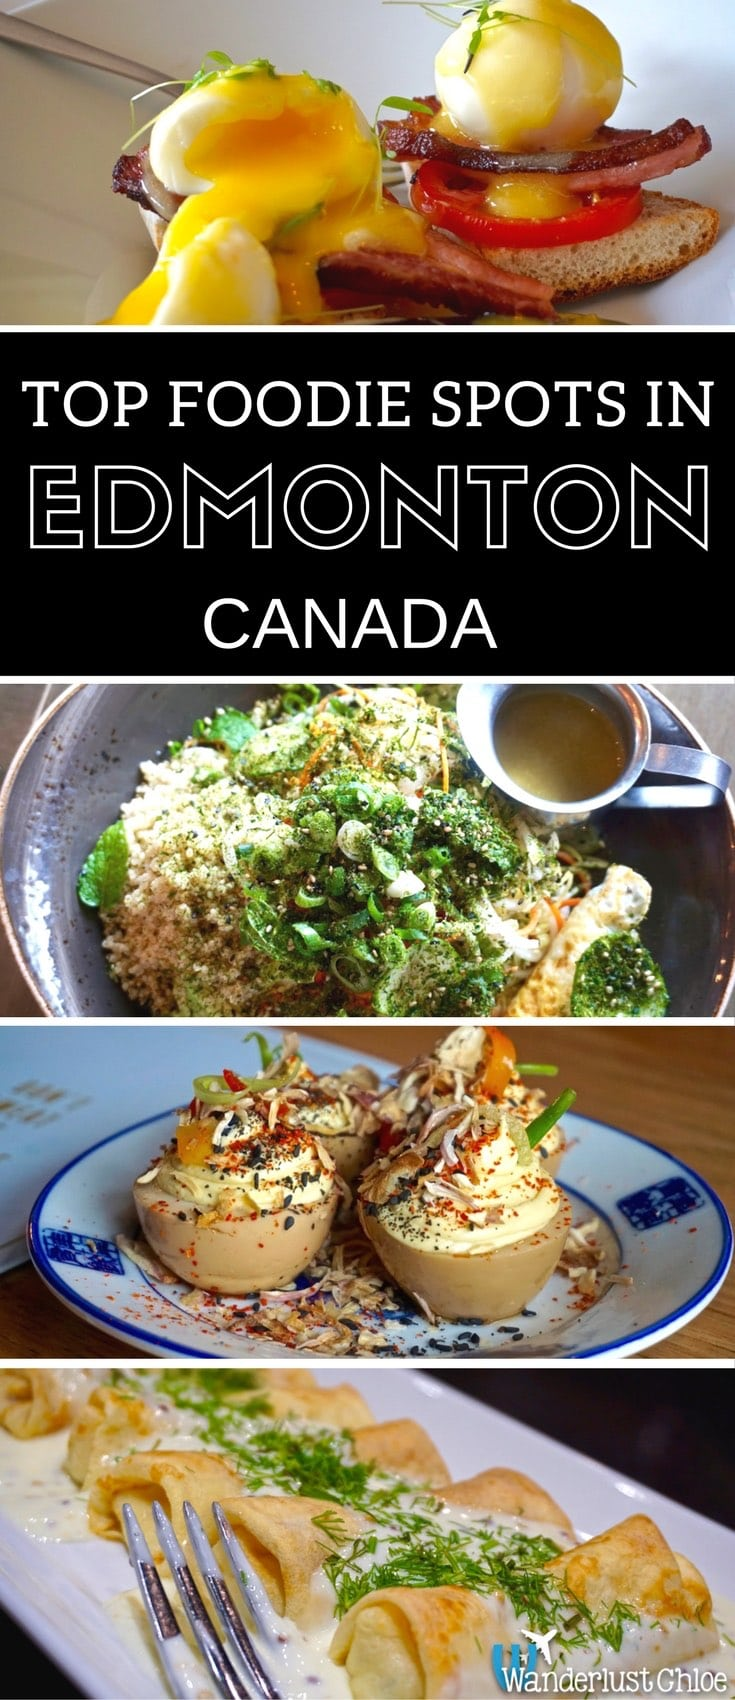 Top Foodie Spots In Edmonton Canada